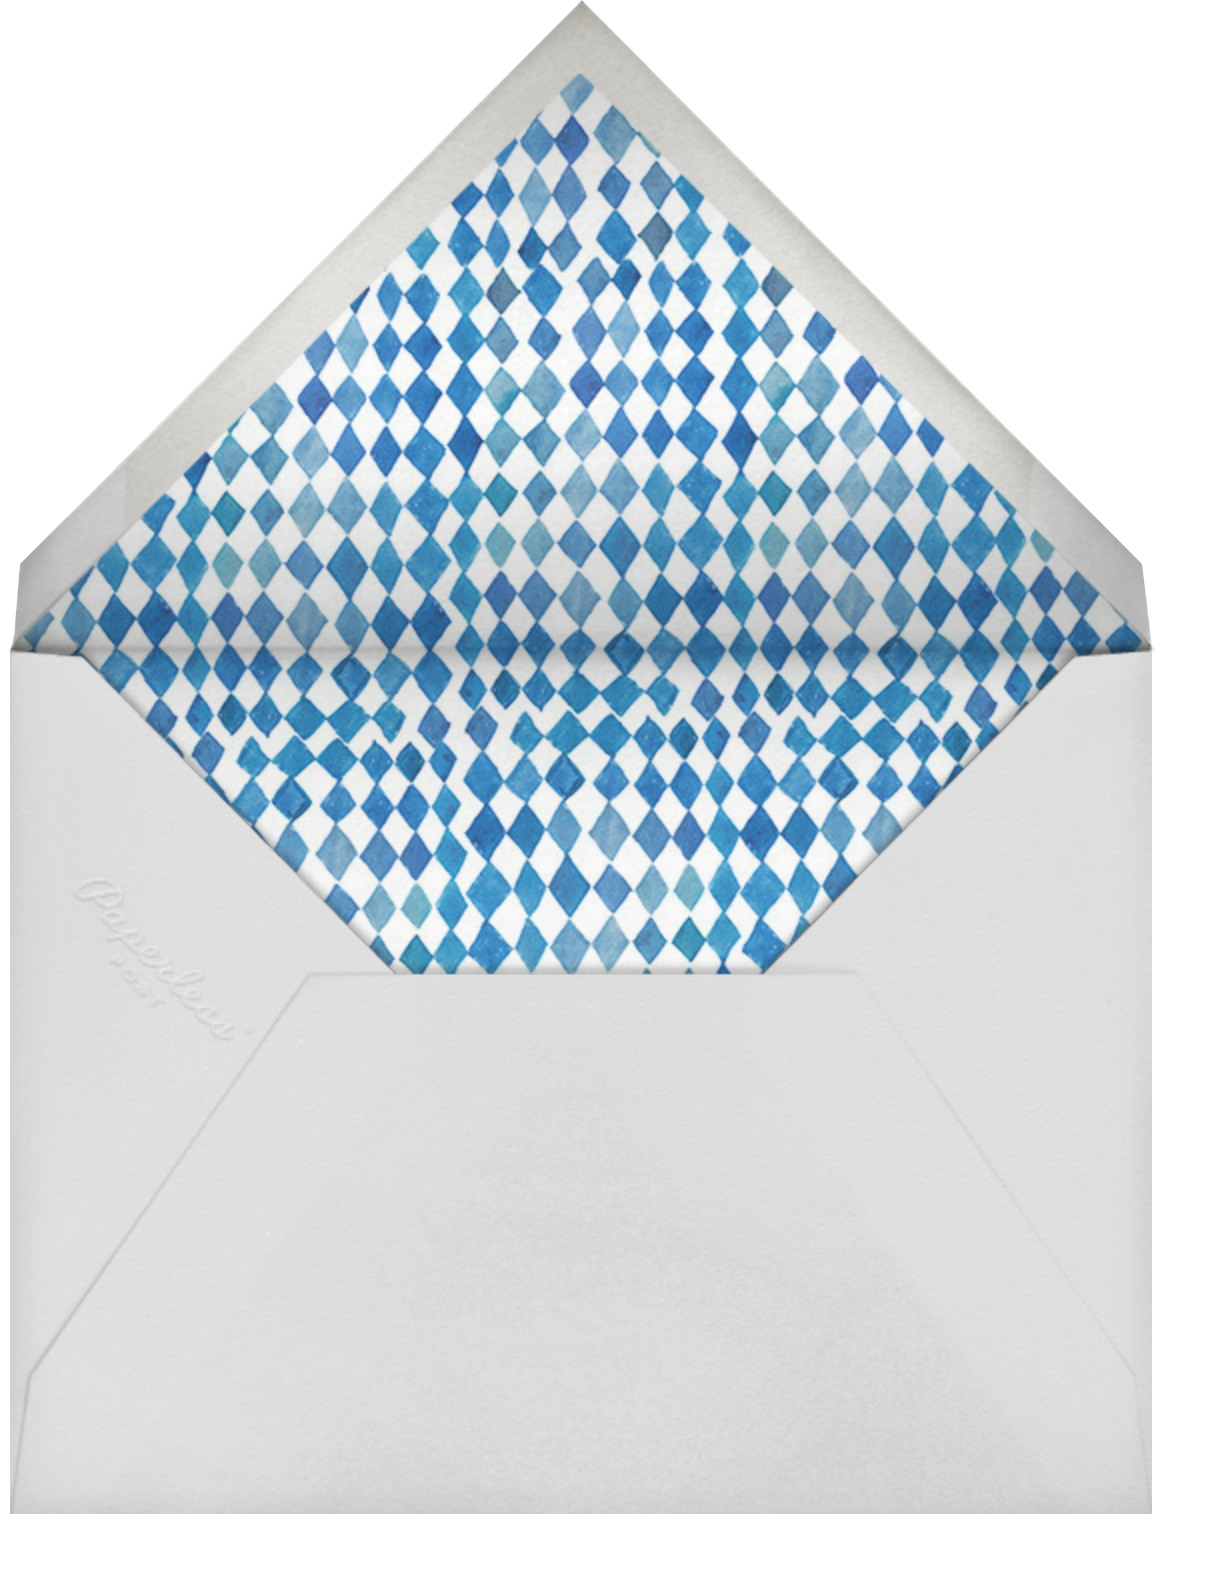 Brunch and Bubbles - Happy Menocal - Baby shower - envelope back